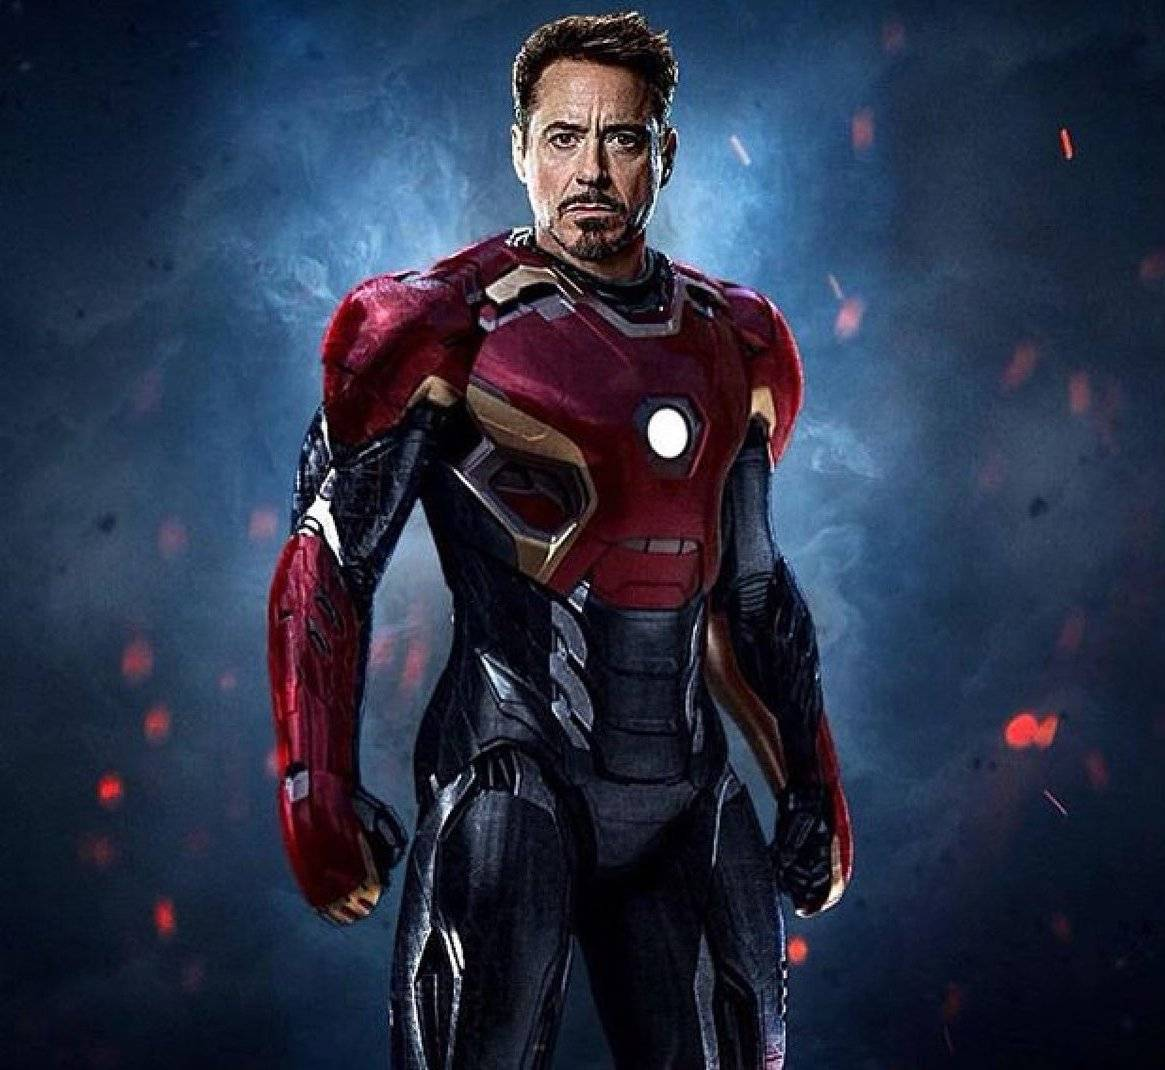 Robert Downey Jr. Blockbuster